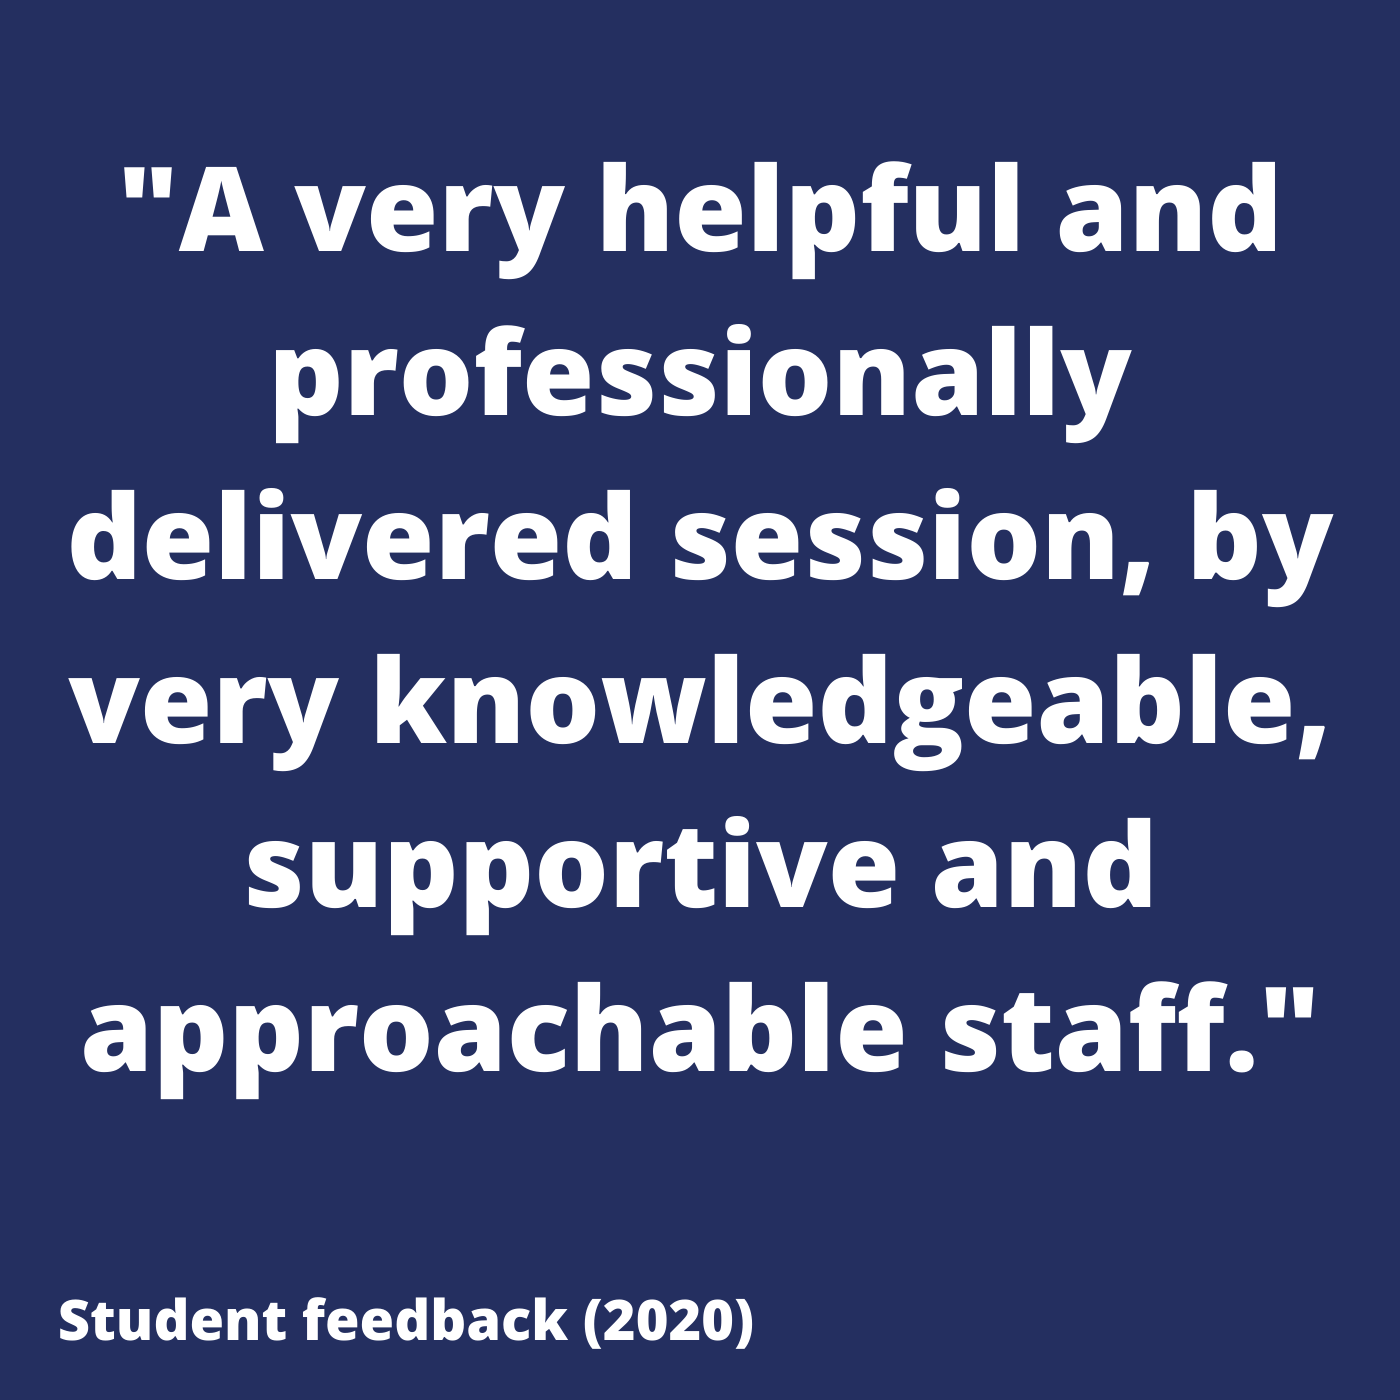 A very helpful and professionally delivered session, by very knowledgeable, supportive and approachable staff. Student feedback 2020